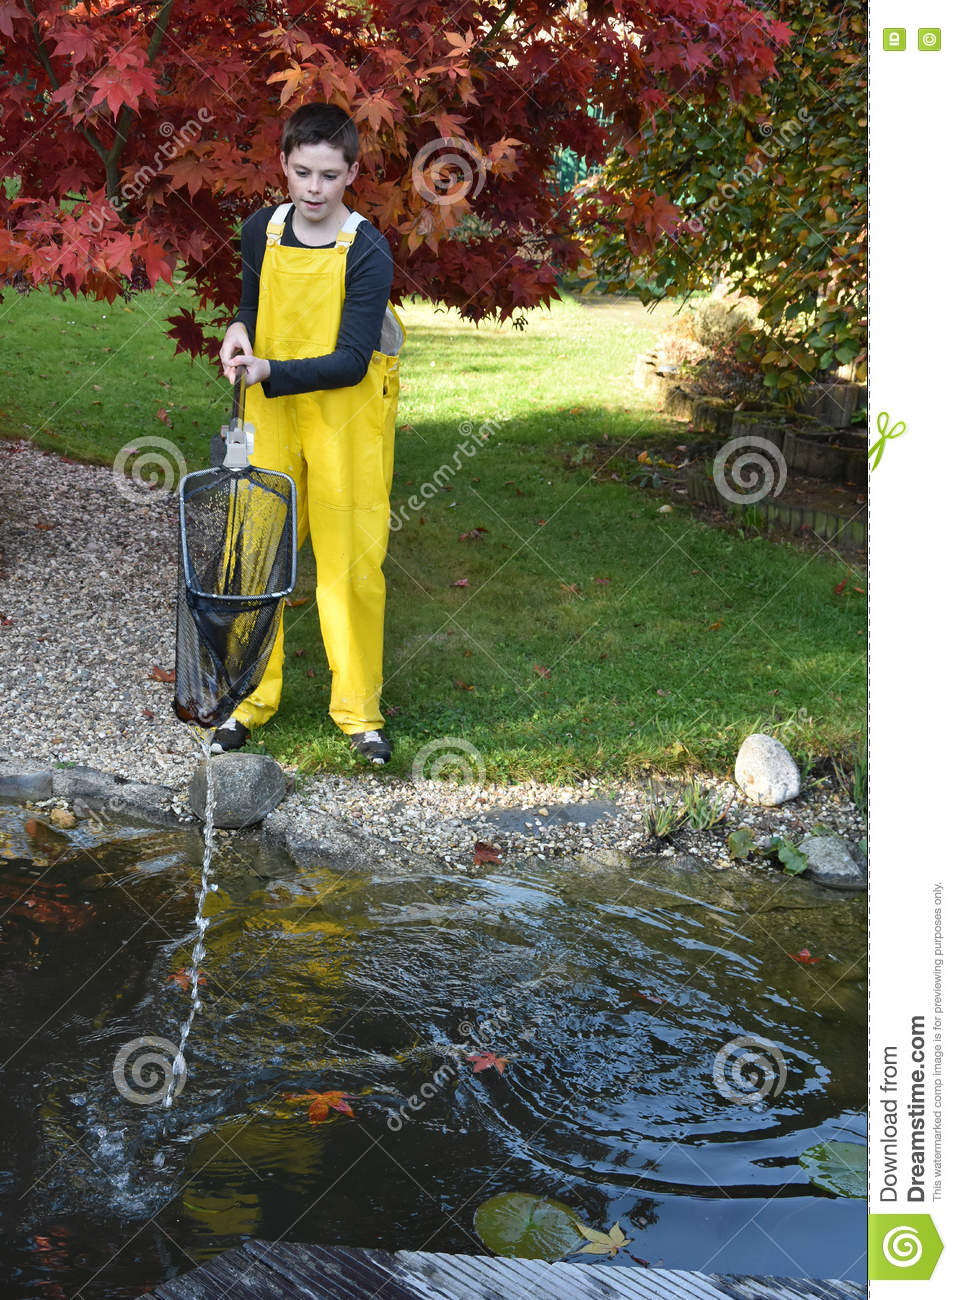 Boy cleaning garden pond stock photo image 79834915 for Garden pond cleaning